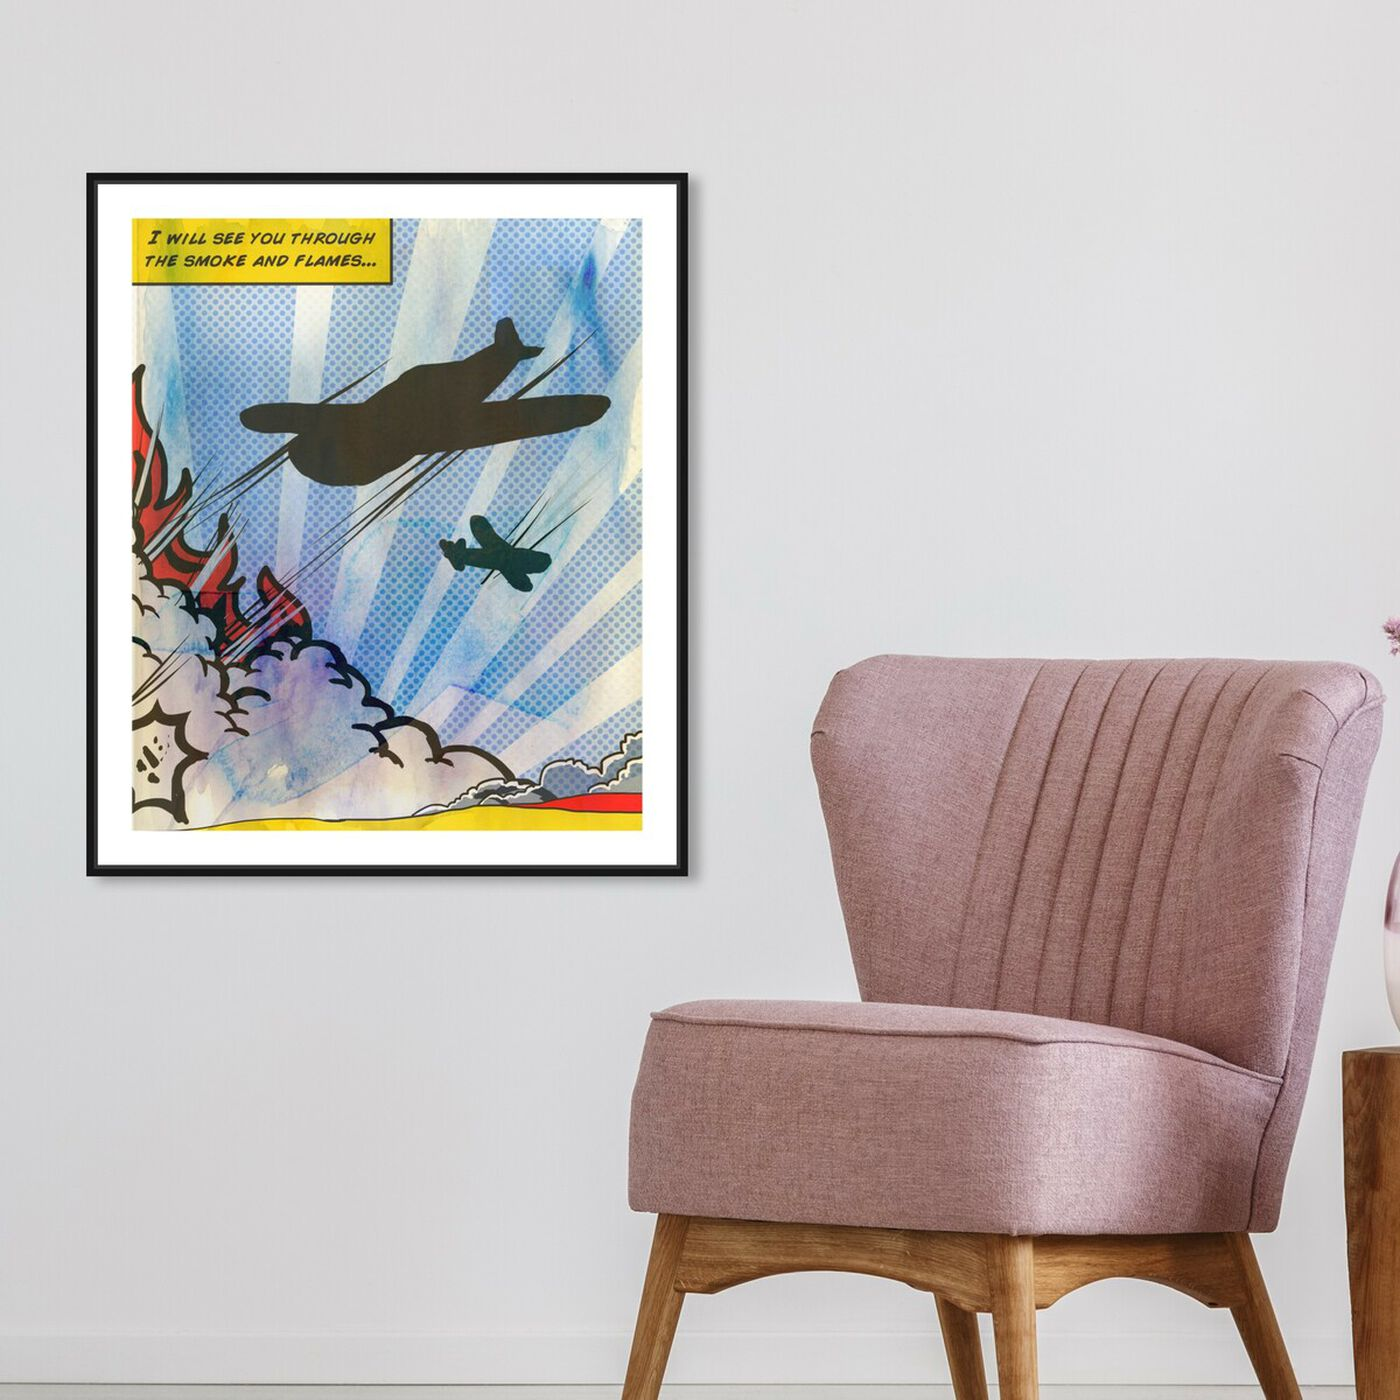 Hanging view of Rockets featuring advertising and comics art.